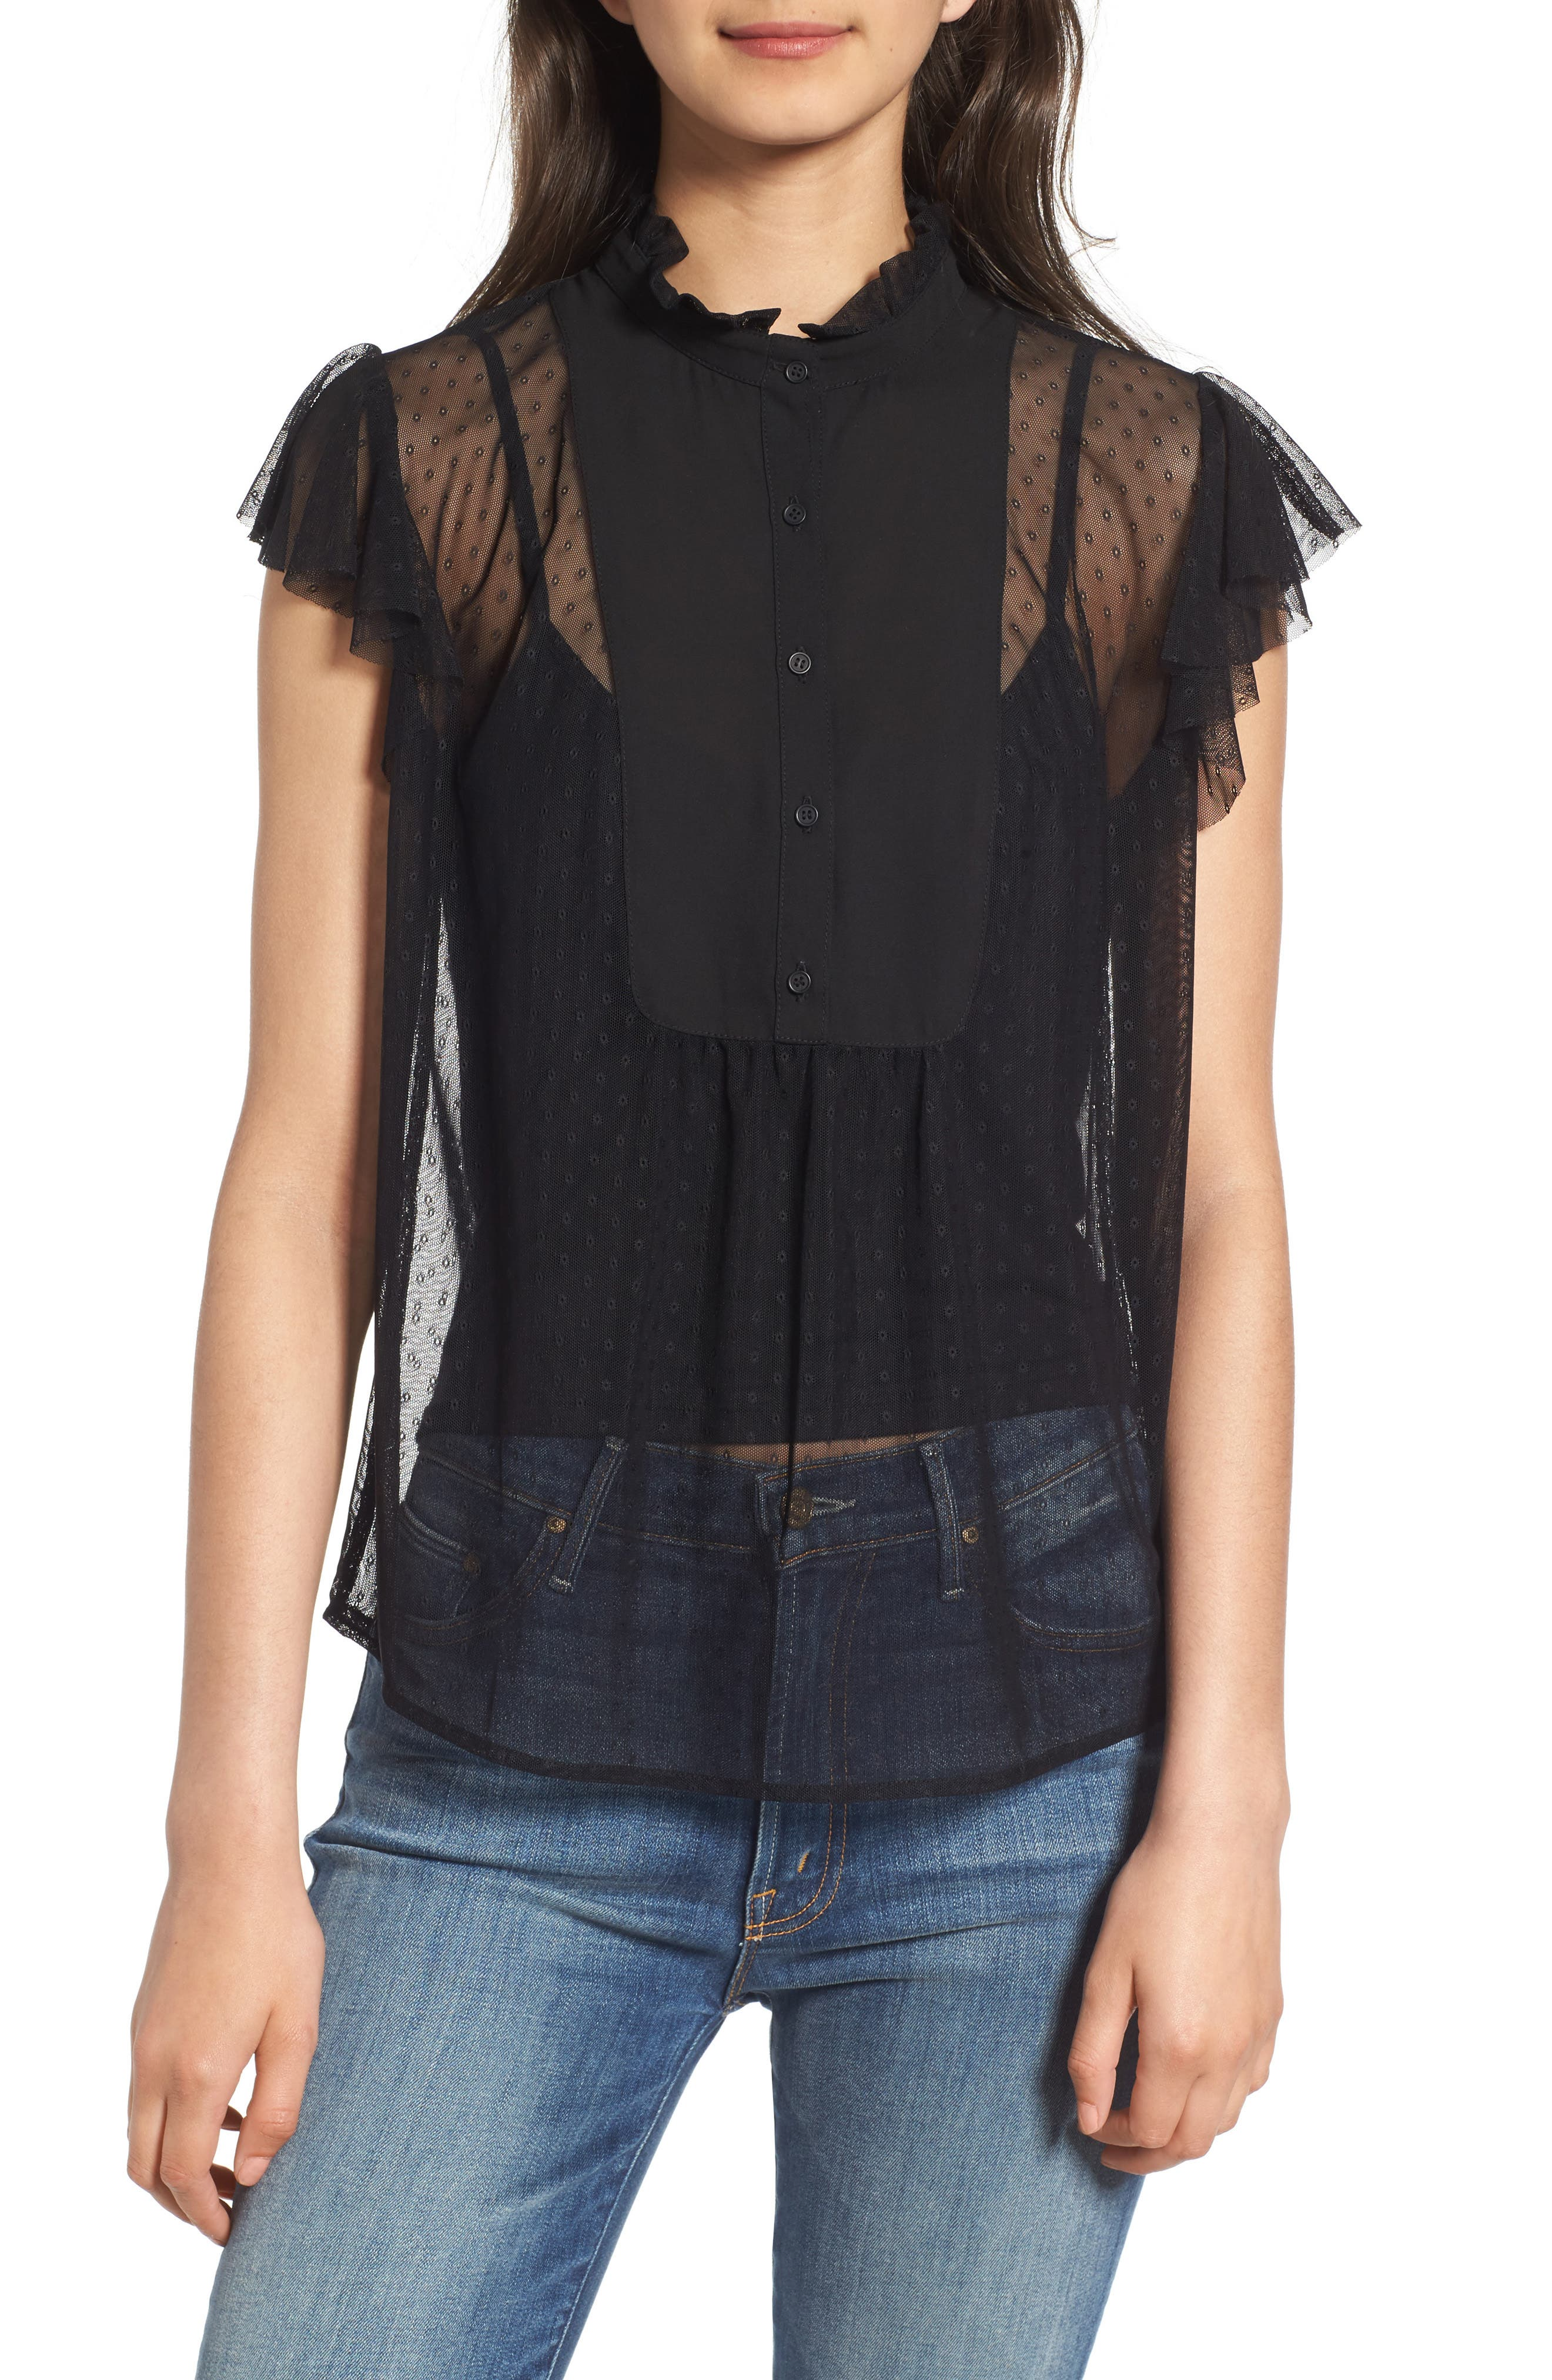 Main Image - Hinge High Neck Lace Top